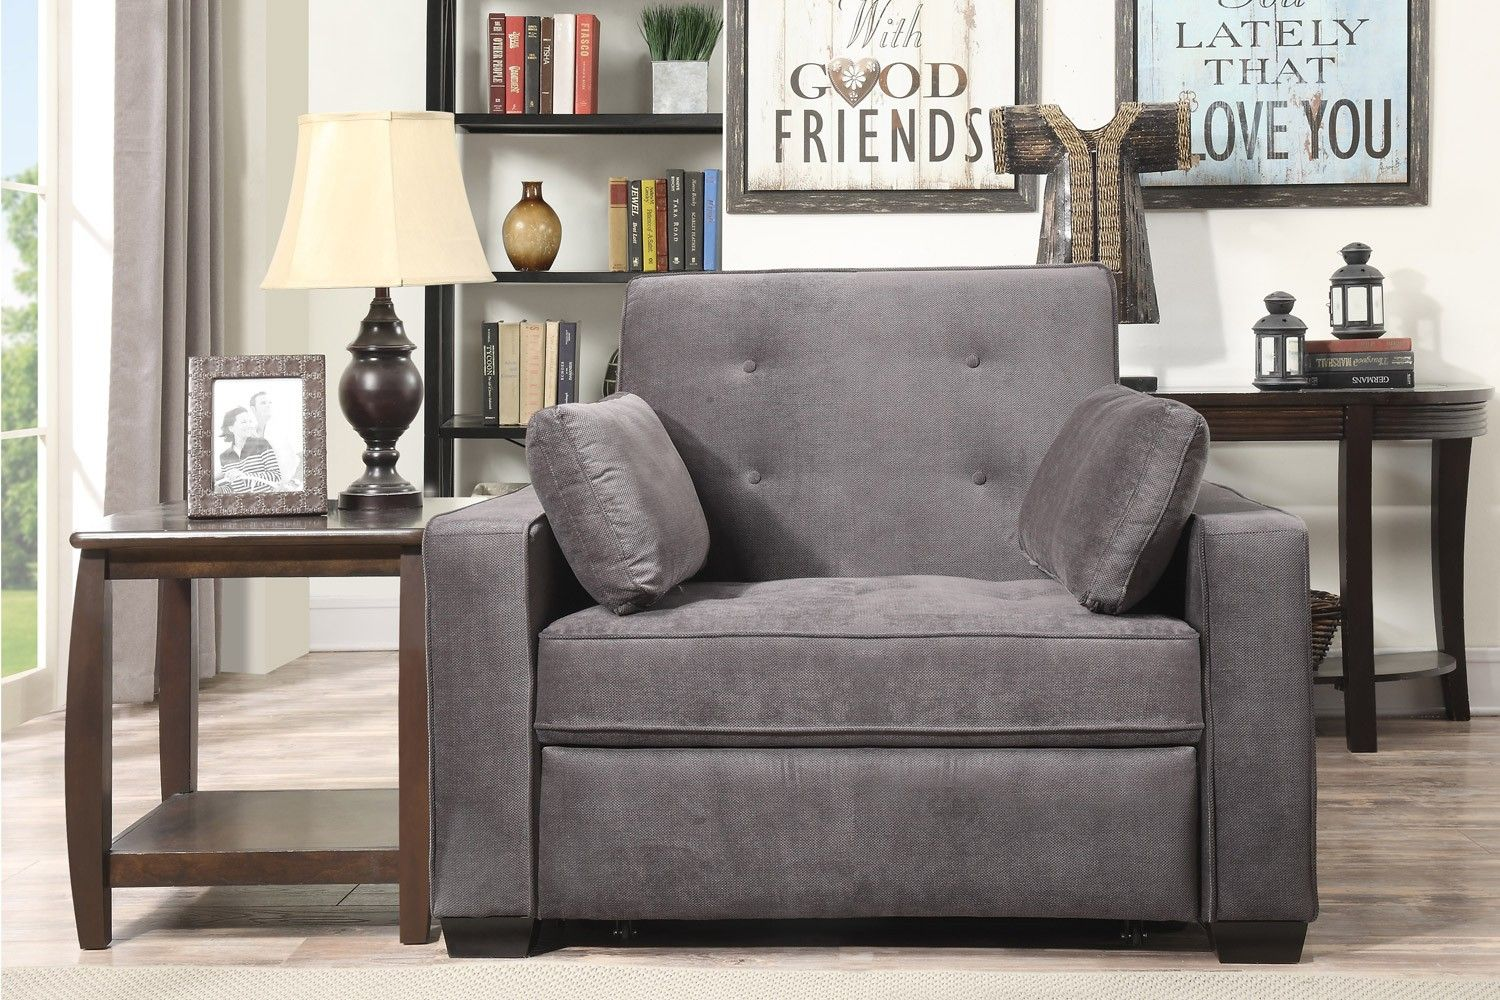 Serta Augustine Upholstered Modern E Saving Futon Sofa Bed Chair